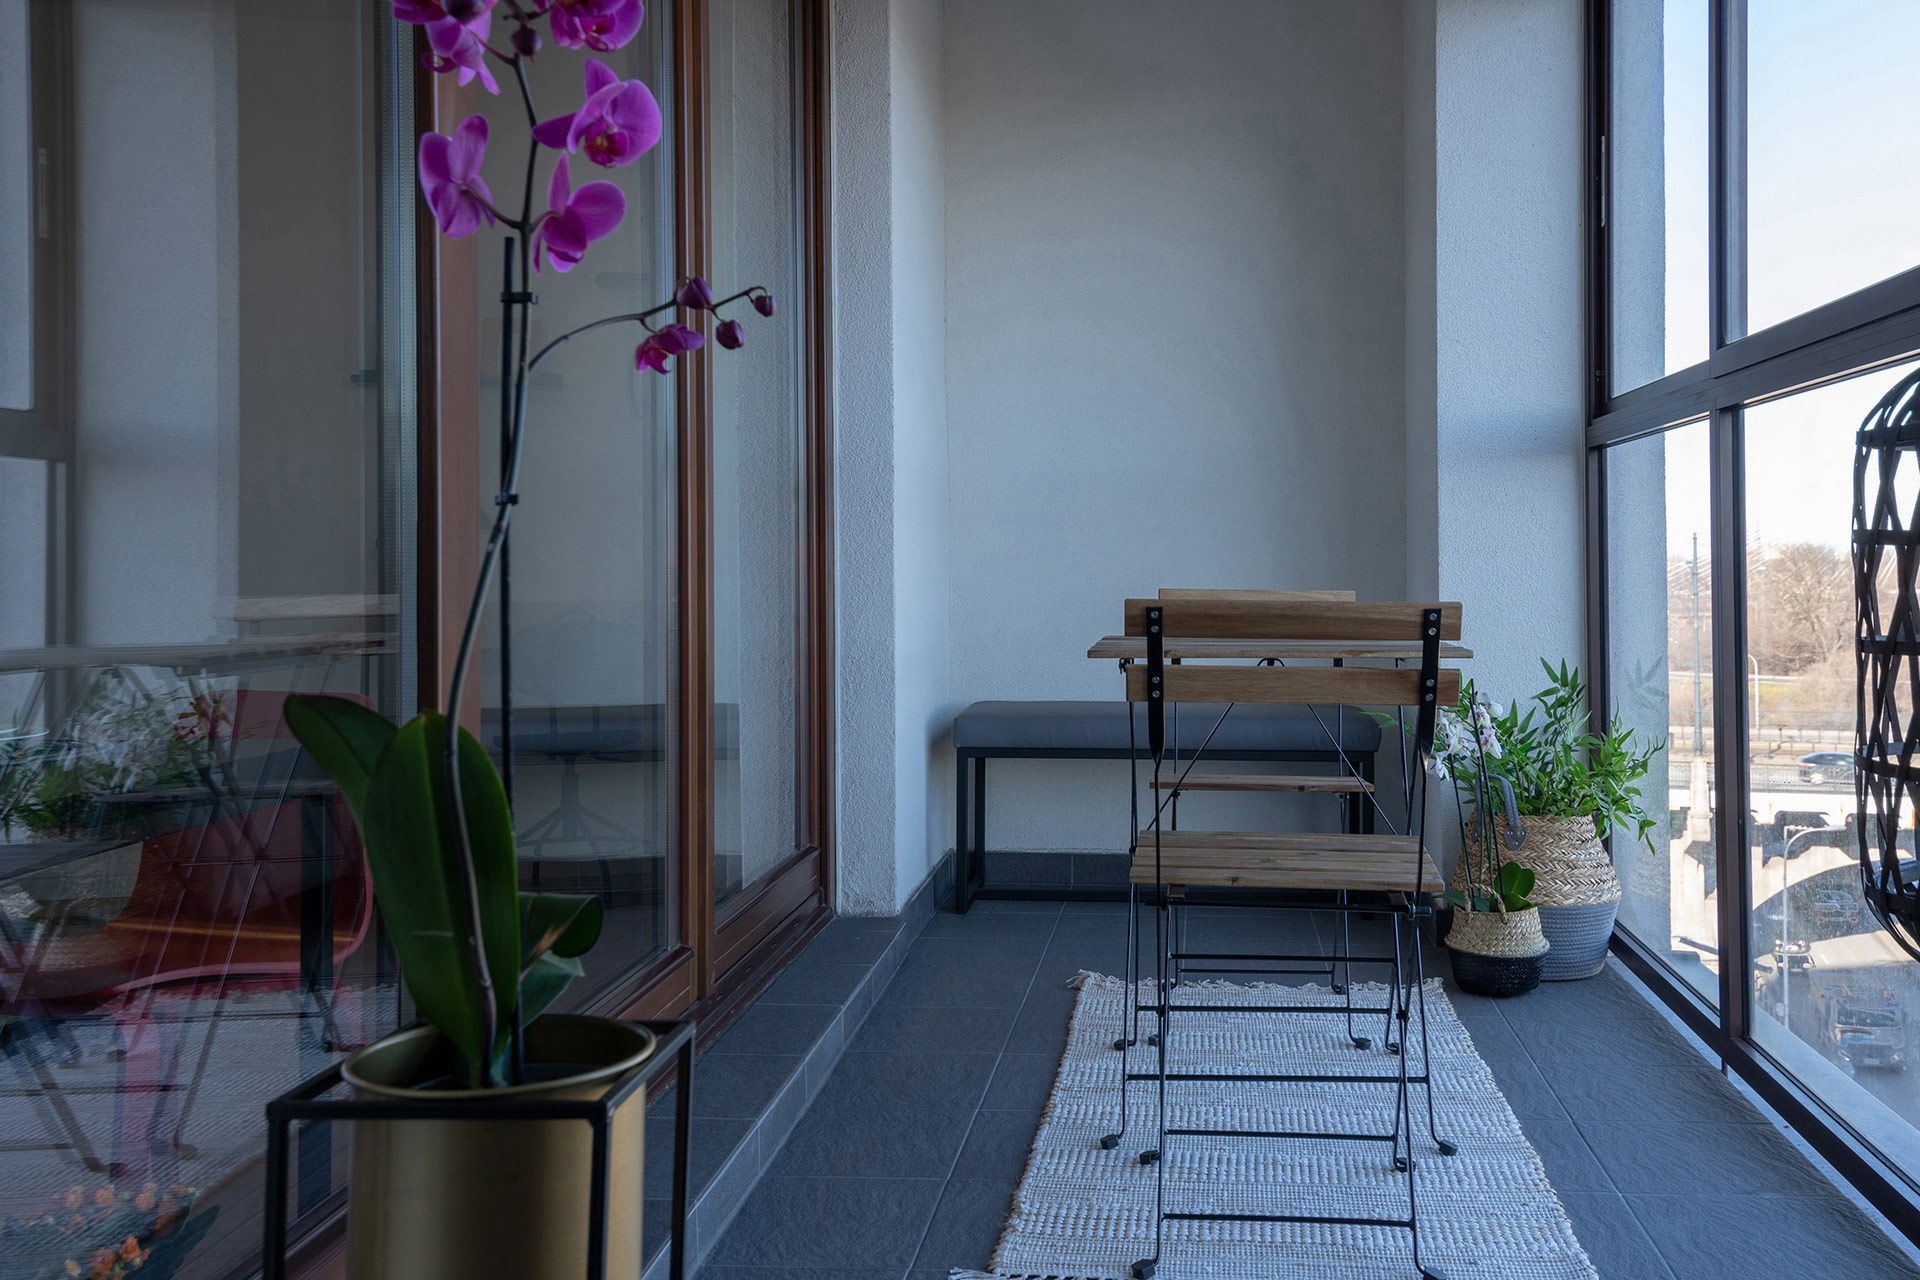 Studio - Large apartment to rent in Warsaw UPR-A-022-2